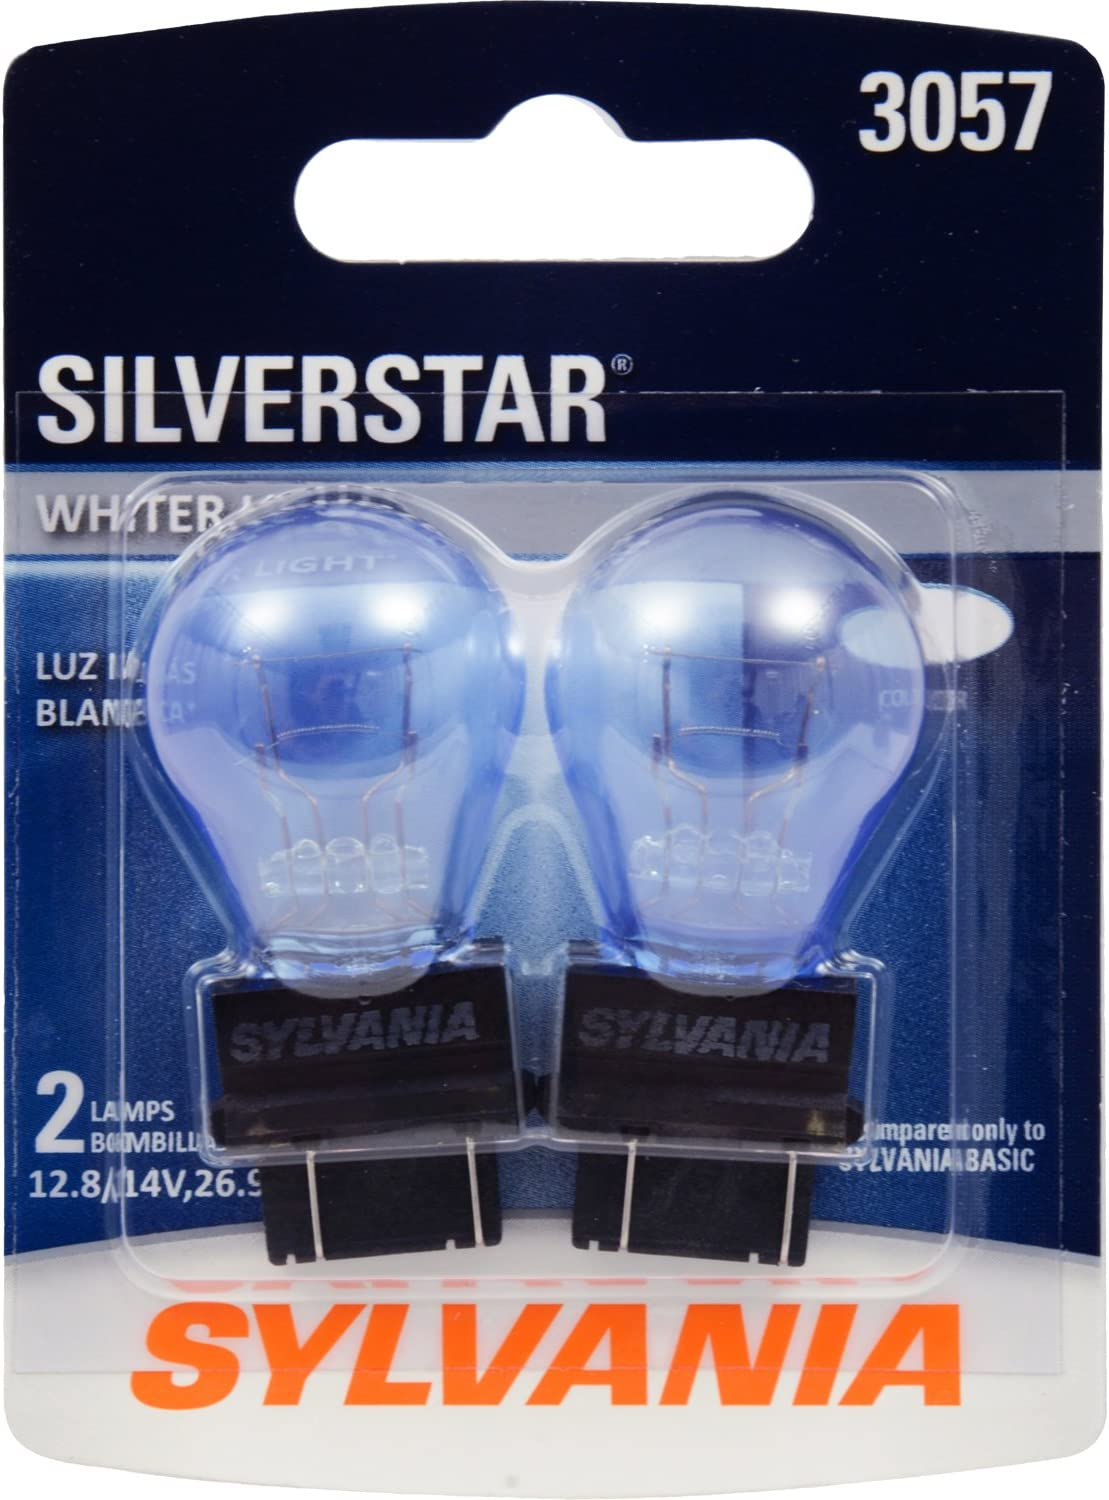 SYLVANIA - 3057 SilverStar Mini Bulb - Brighter and Whiter Light, Ideal for Daytime Running Lights (DRL) and Back-Up/Reverse Lights (Contains 2 Bulbs)